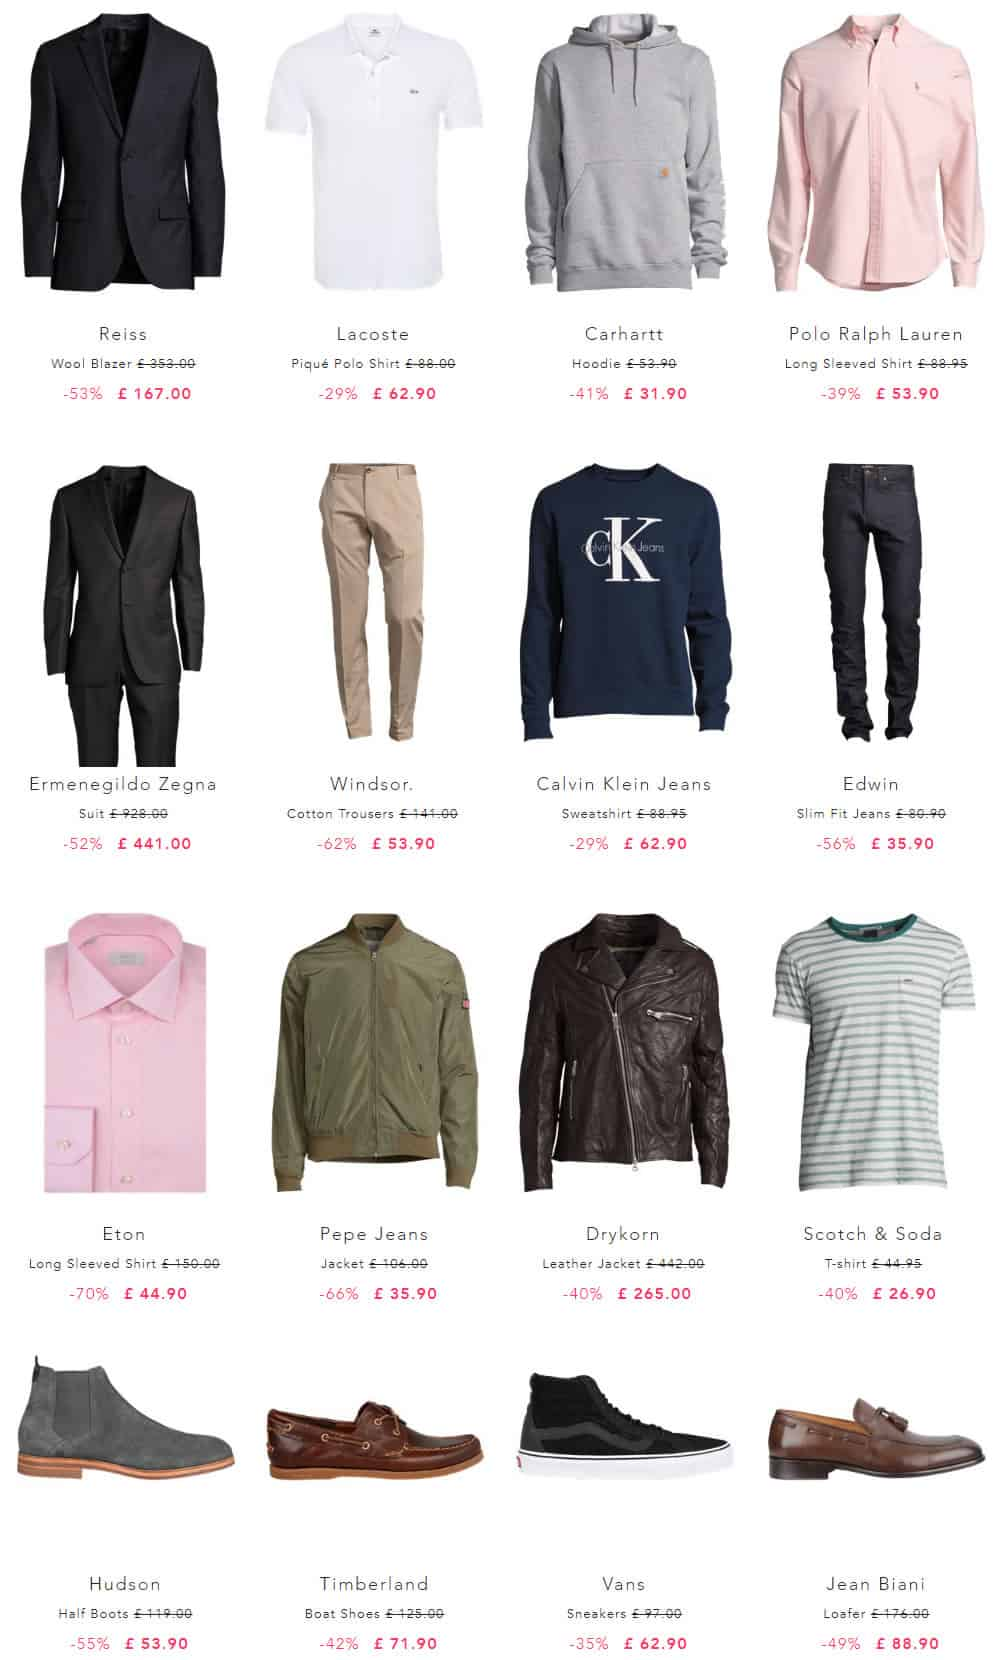 Men's designer clothing at up to 80% off